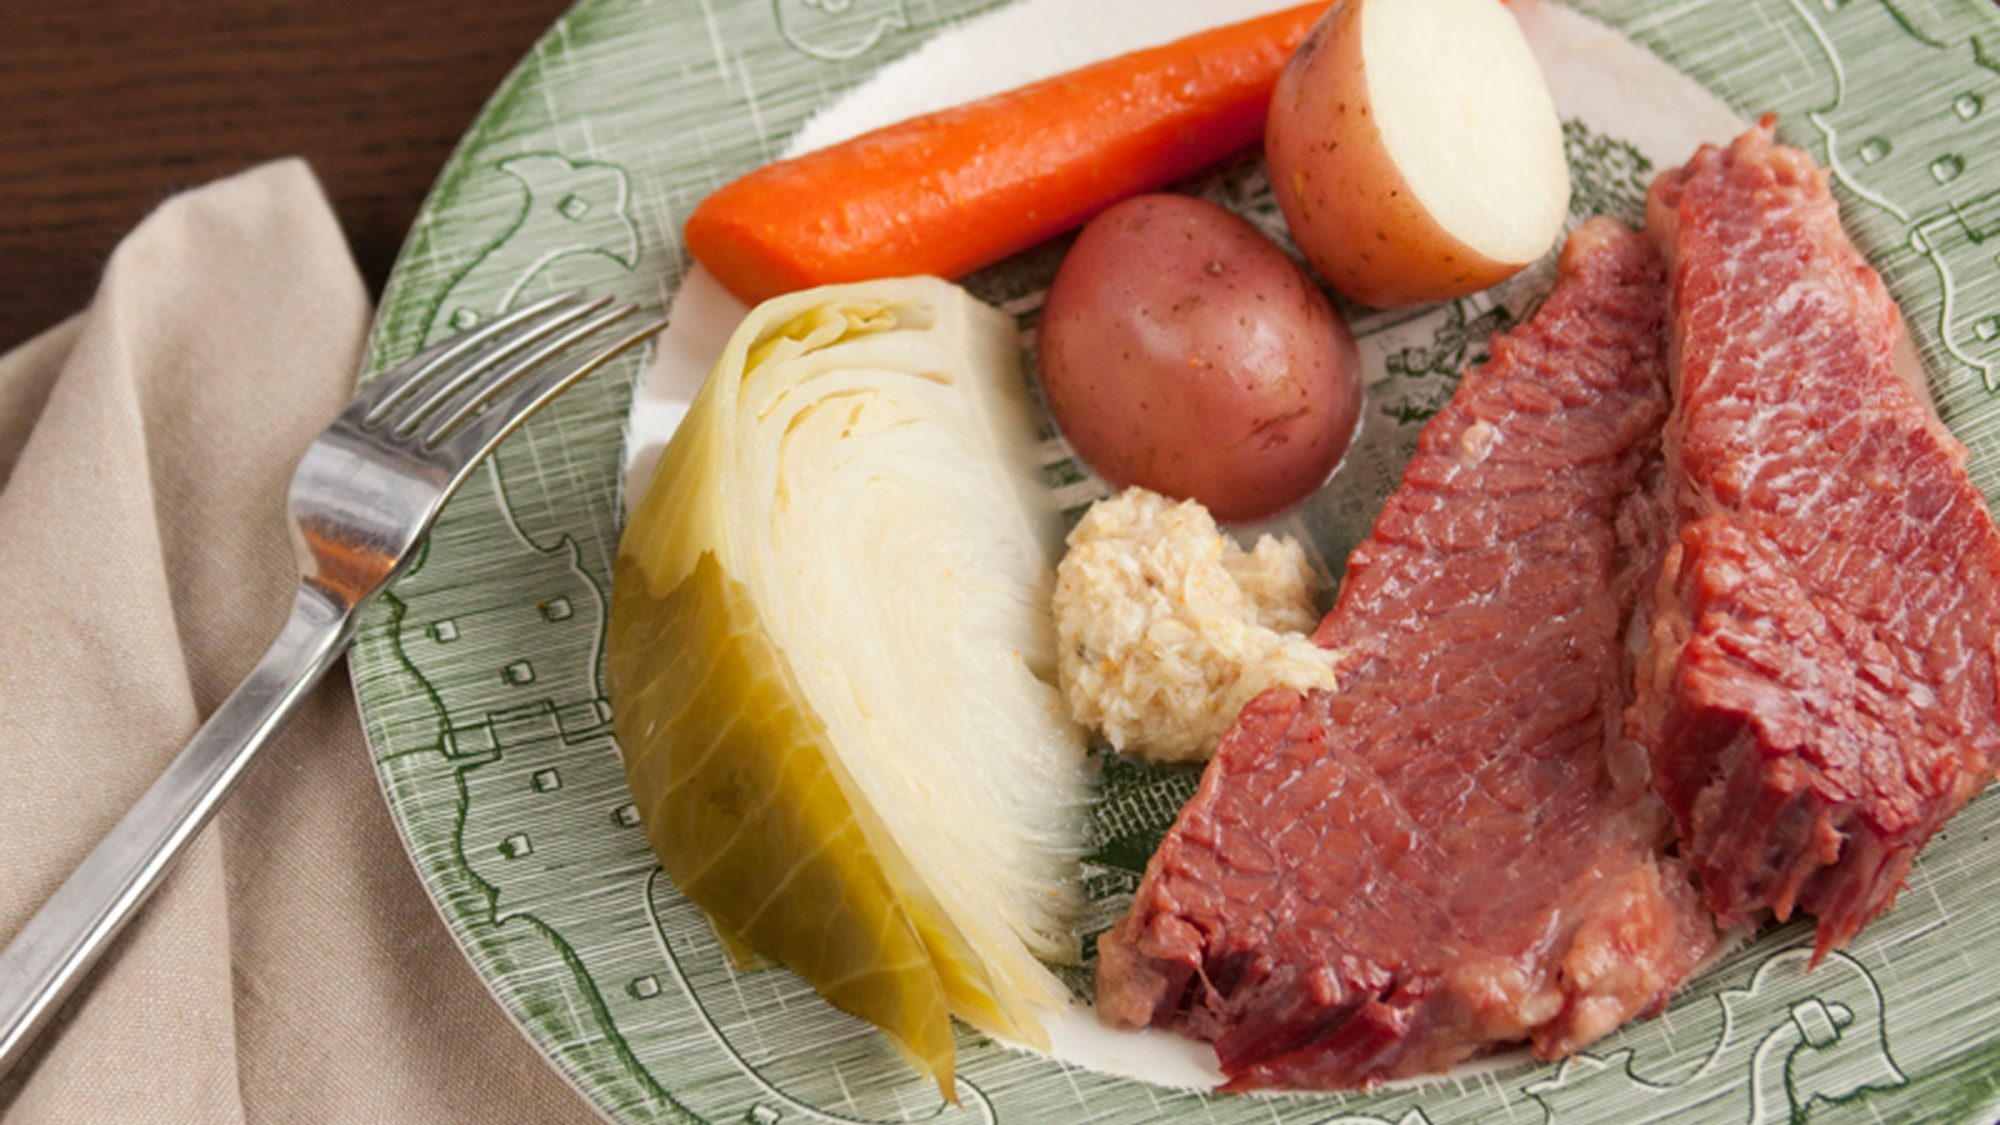 Best Corned Beef Recipes for St. Patrick's Day Dinner